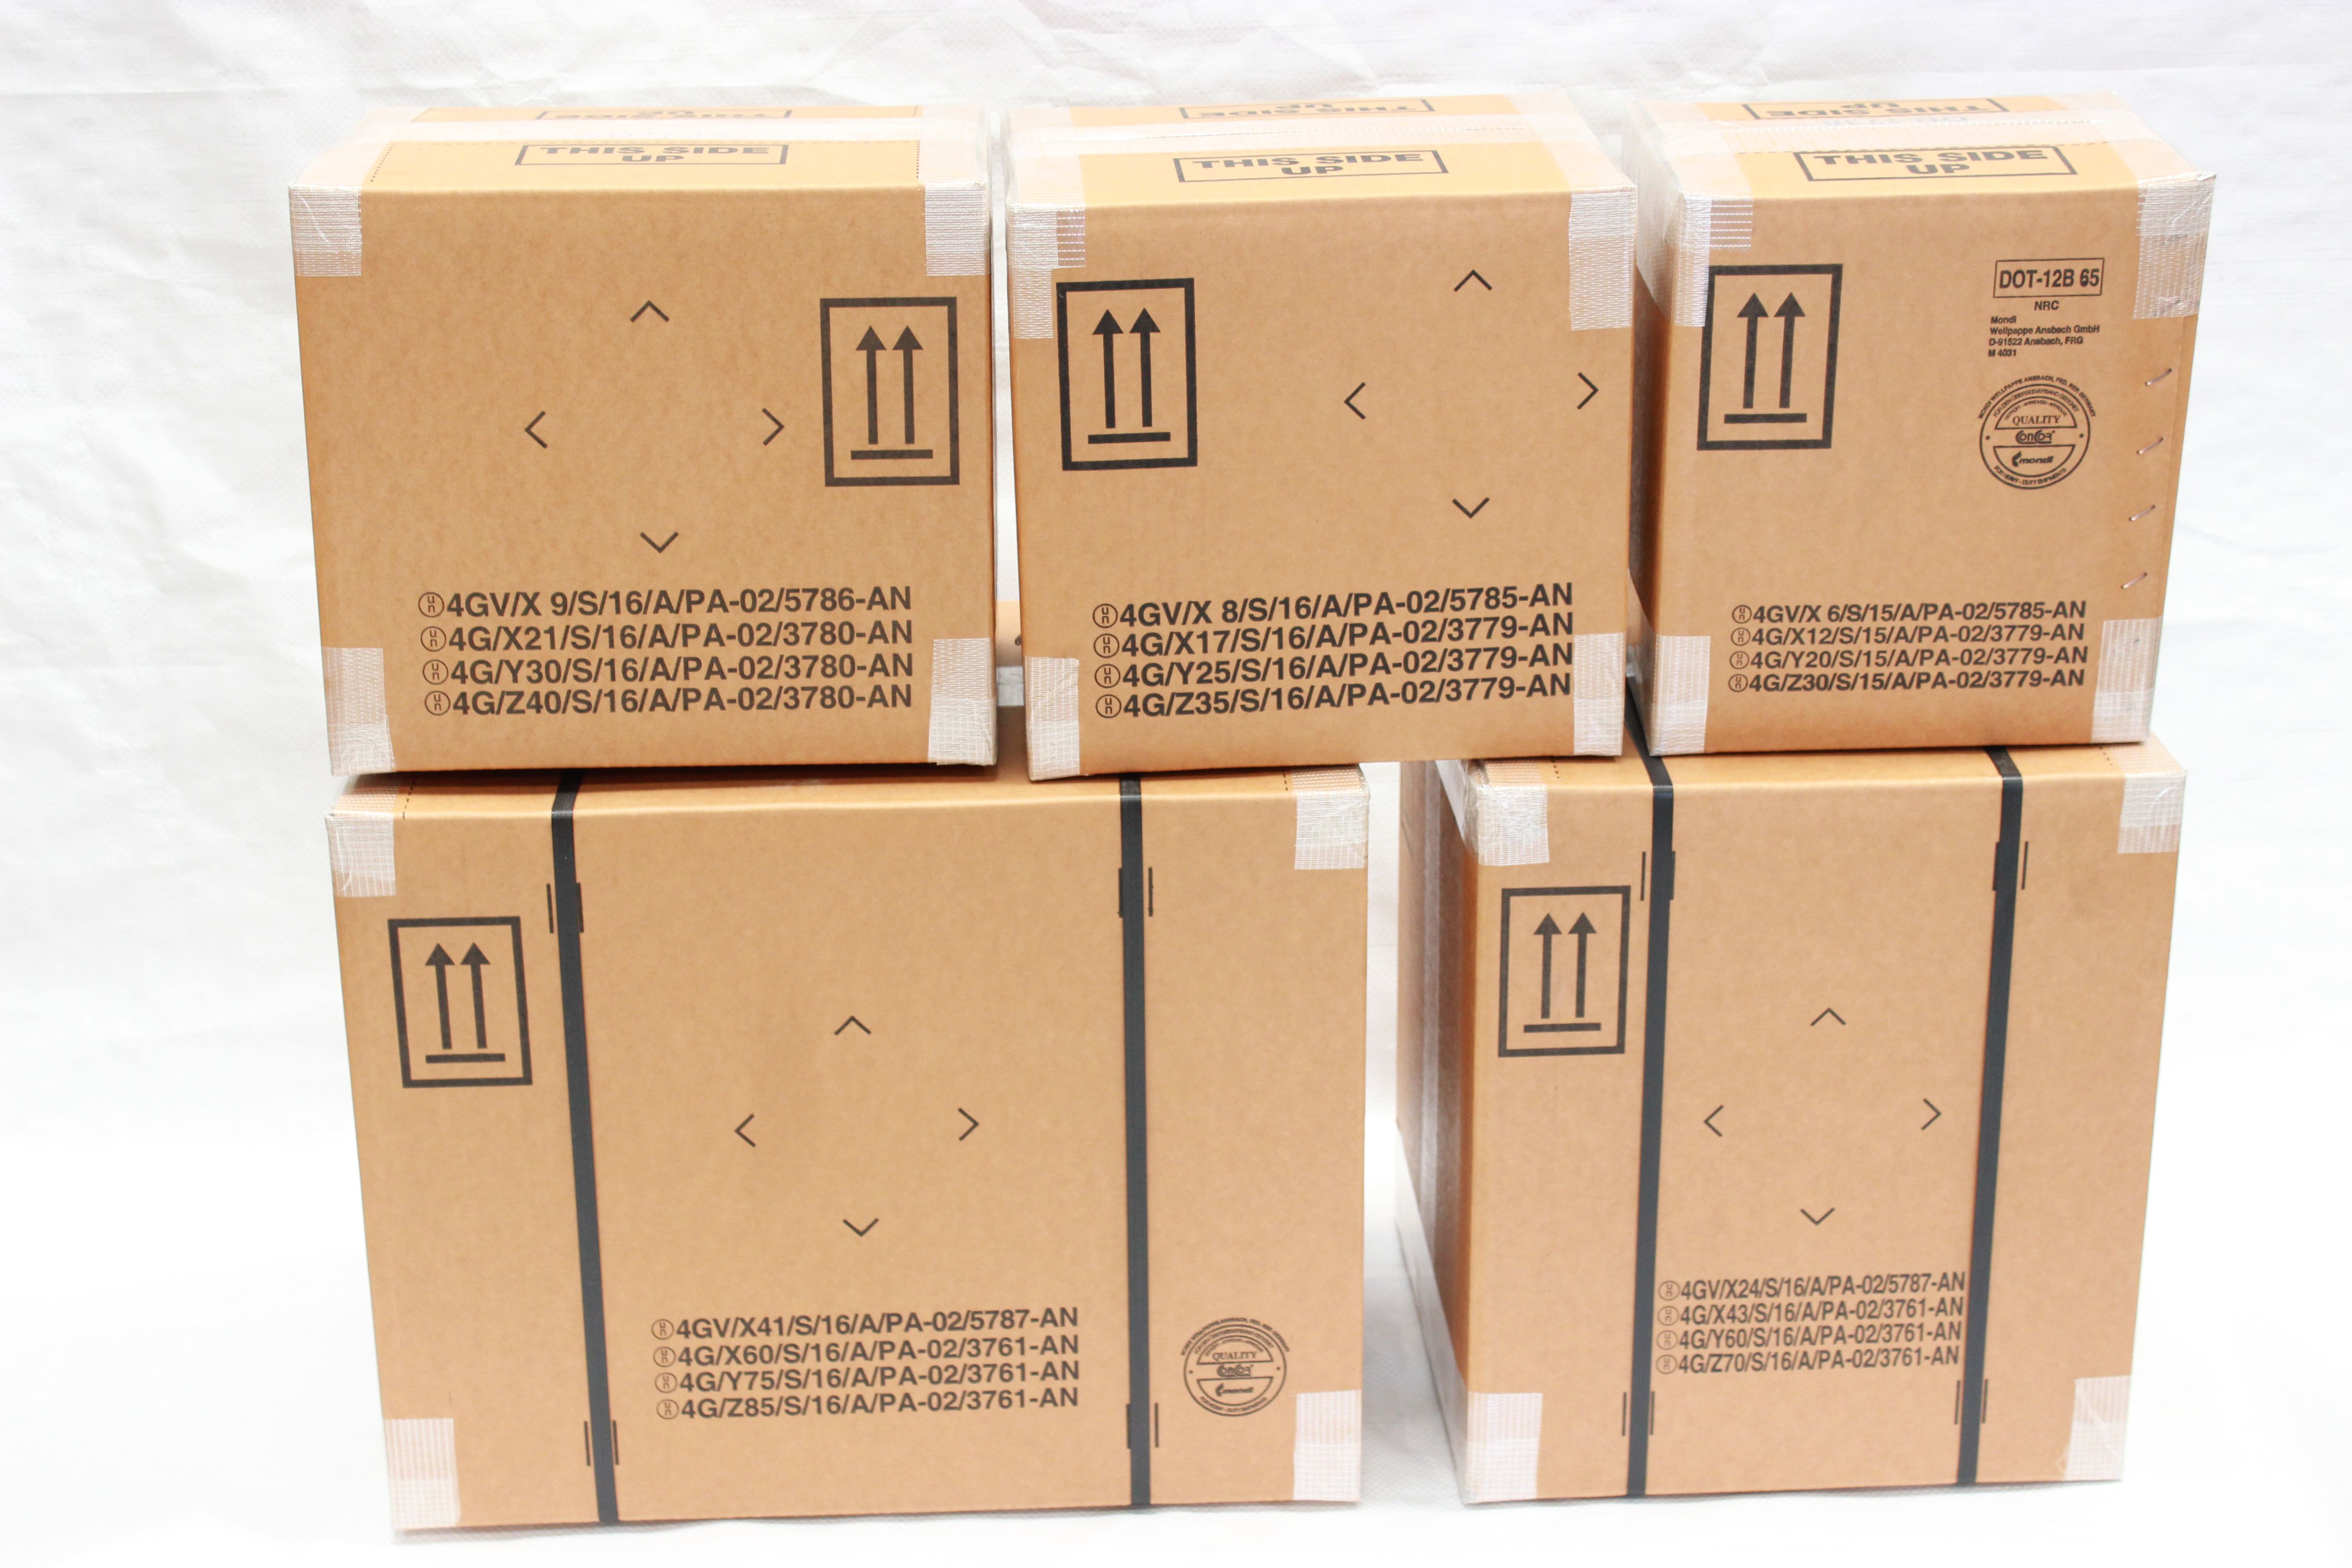 02 Box Un 4g 4gv Fibreboard Boxes And Dangerous Goods Packaging Mps